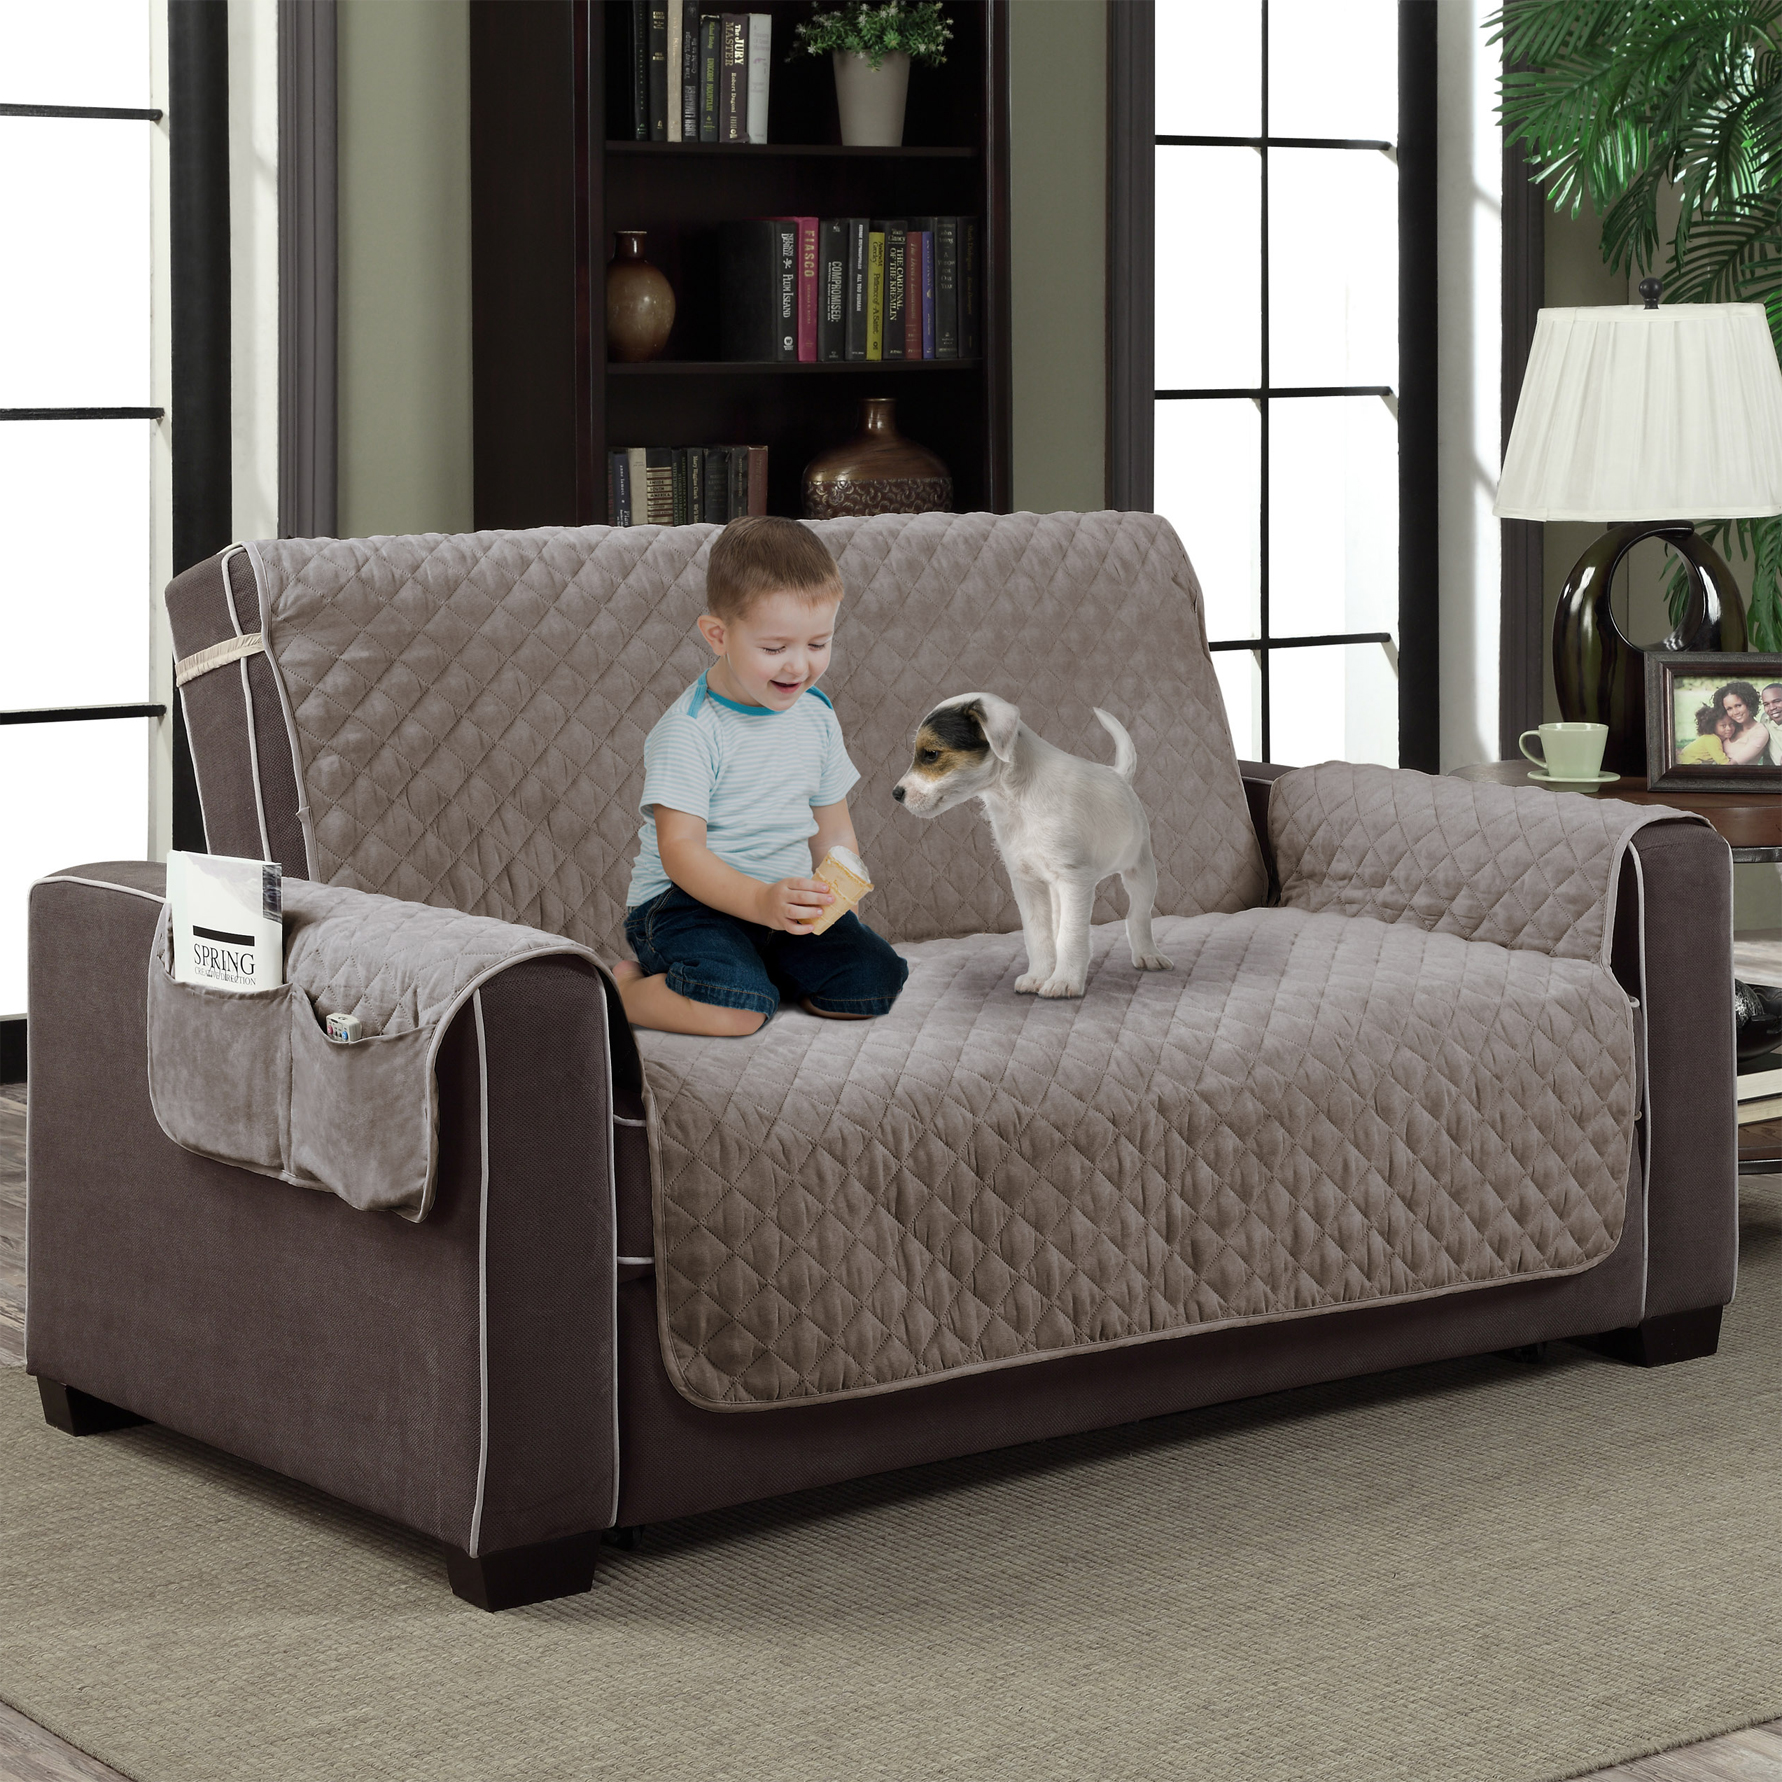 Marvelous Details About Gray Microfiber Slipcover Pet Dog Furniture Reversible Couch Protector W Pocket Ncnpc Chair Design For Home Ncnpcorg